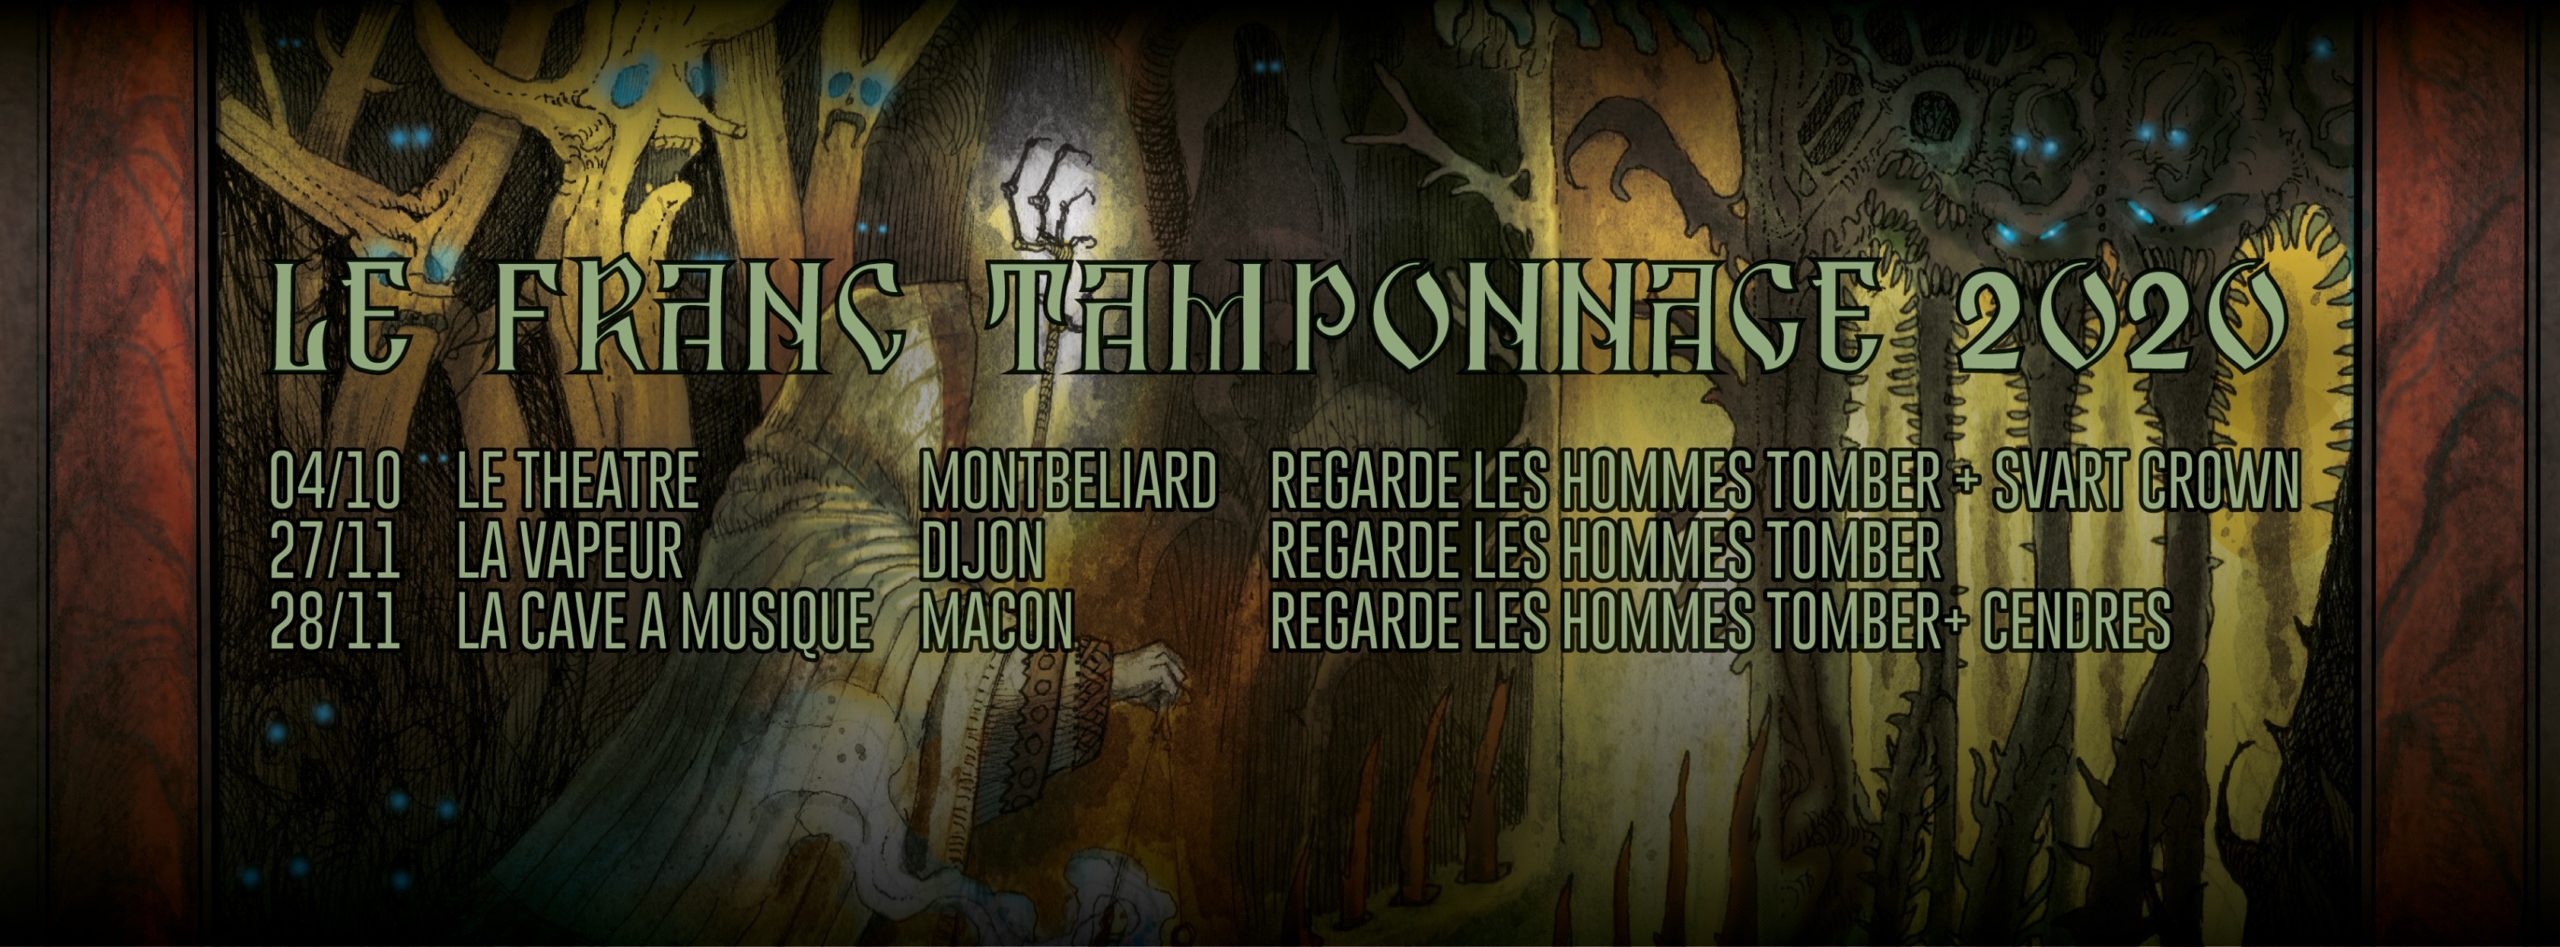 Live Report – French Black Metal – SVART CROWN and REGARDE LES HOMMES TOMBER in Montbéliard, France, 04/10/2020